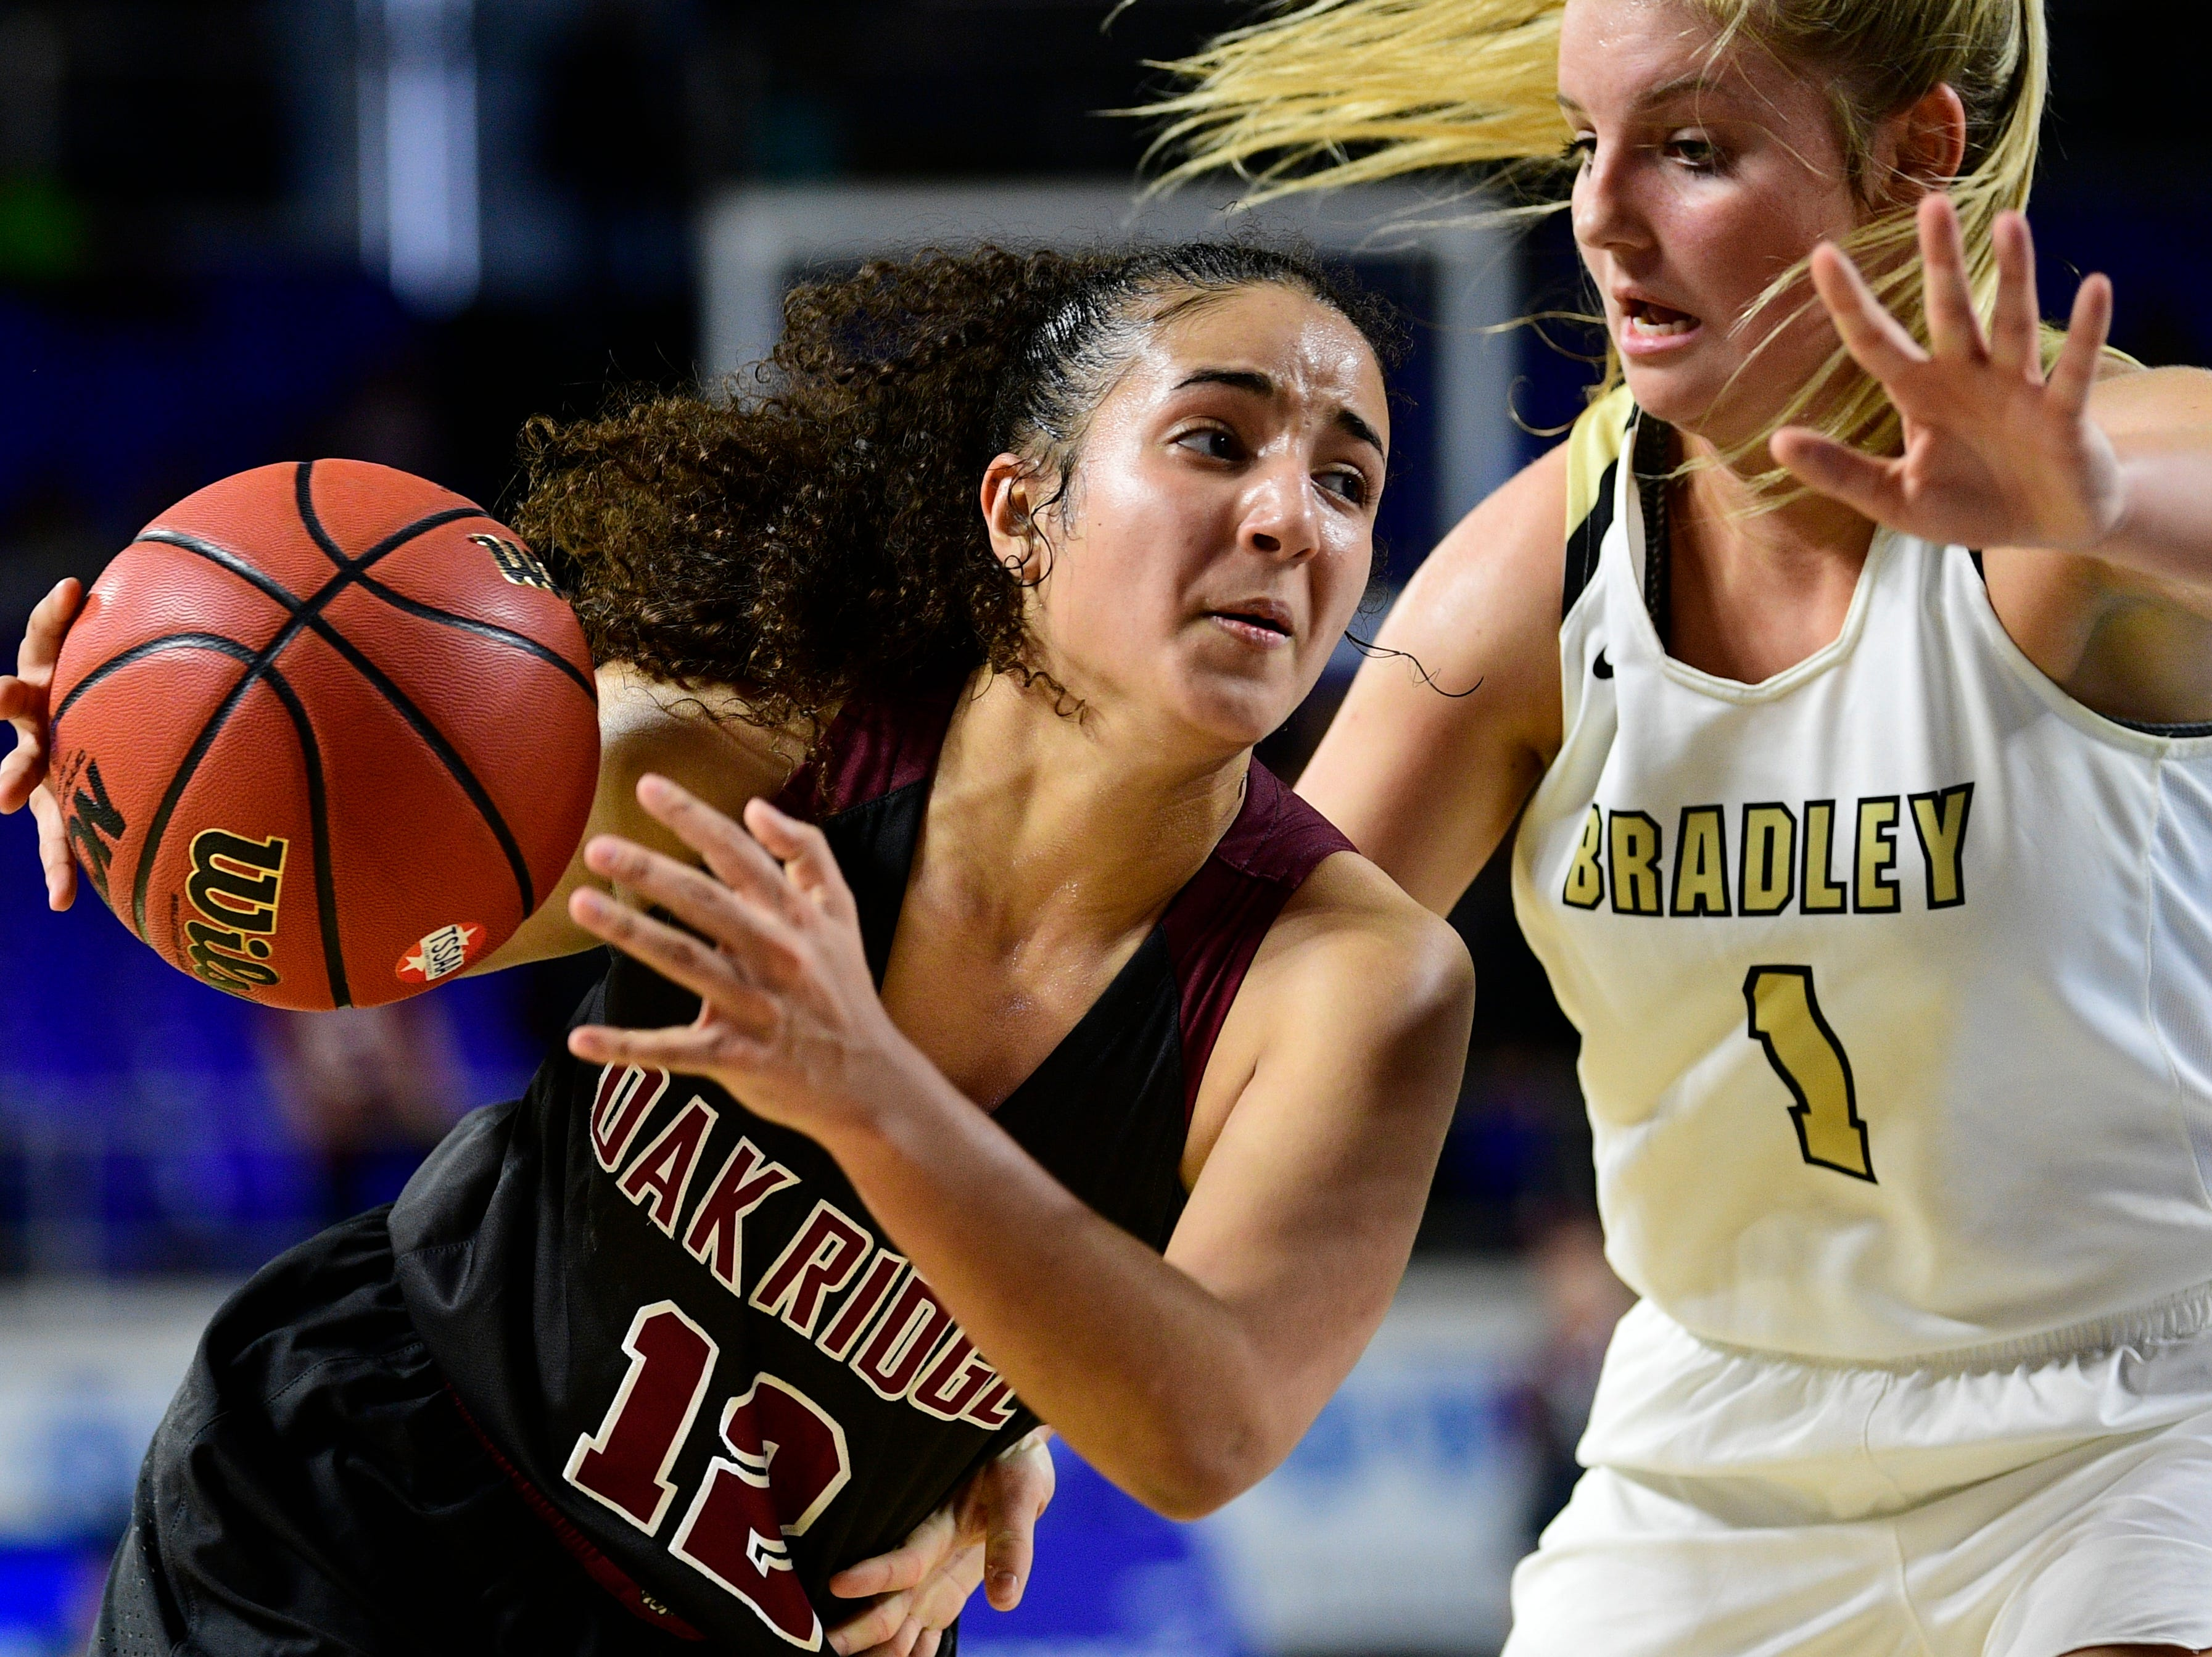 Oak Ridge's Brianna Dunbar (12) dribbles past Bradley Central's Kaleigh Hughes (1) during a game between Oak Ridge and Bradley Central at the TSSAA girls state tournament at the Murphy Center in Murfreesboro, Tennessee on Friday, March 8, 2019.